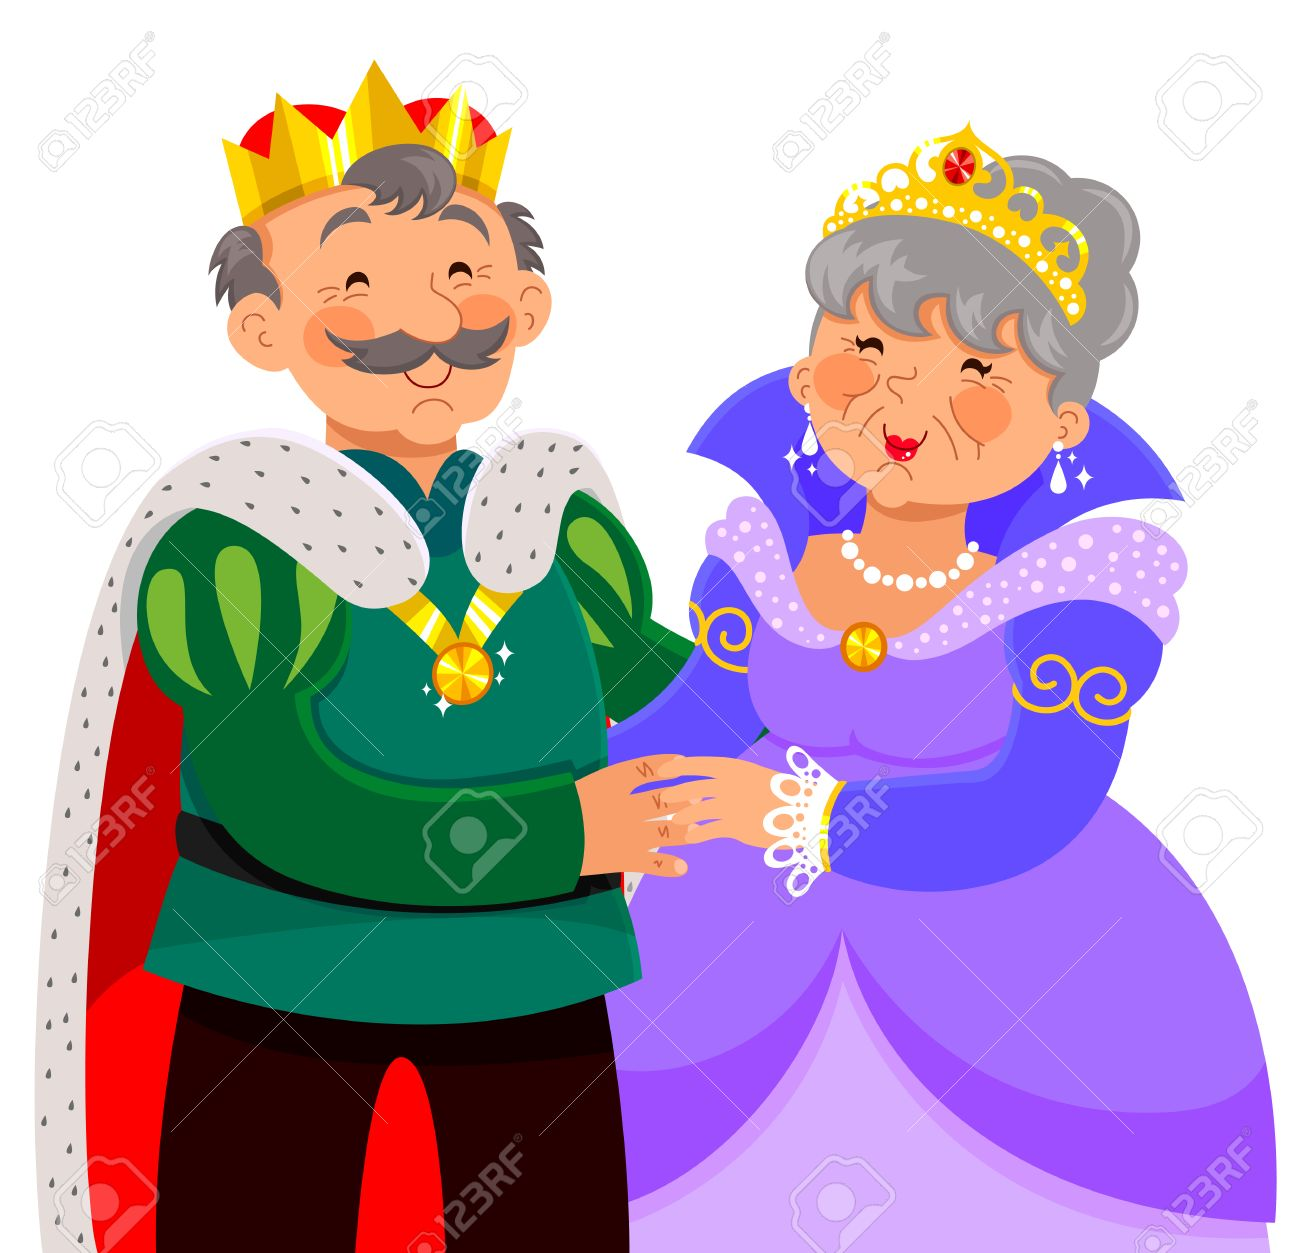 Clip Art King And Queen Clipart elderly king and queen hugging happily royalty free cliparts vector happily